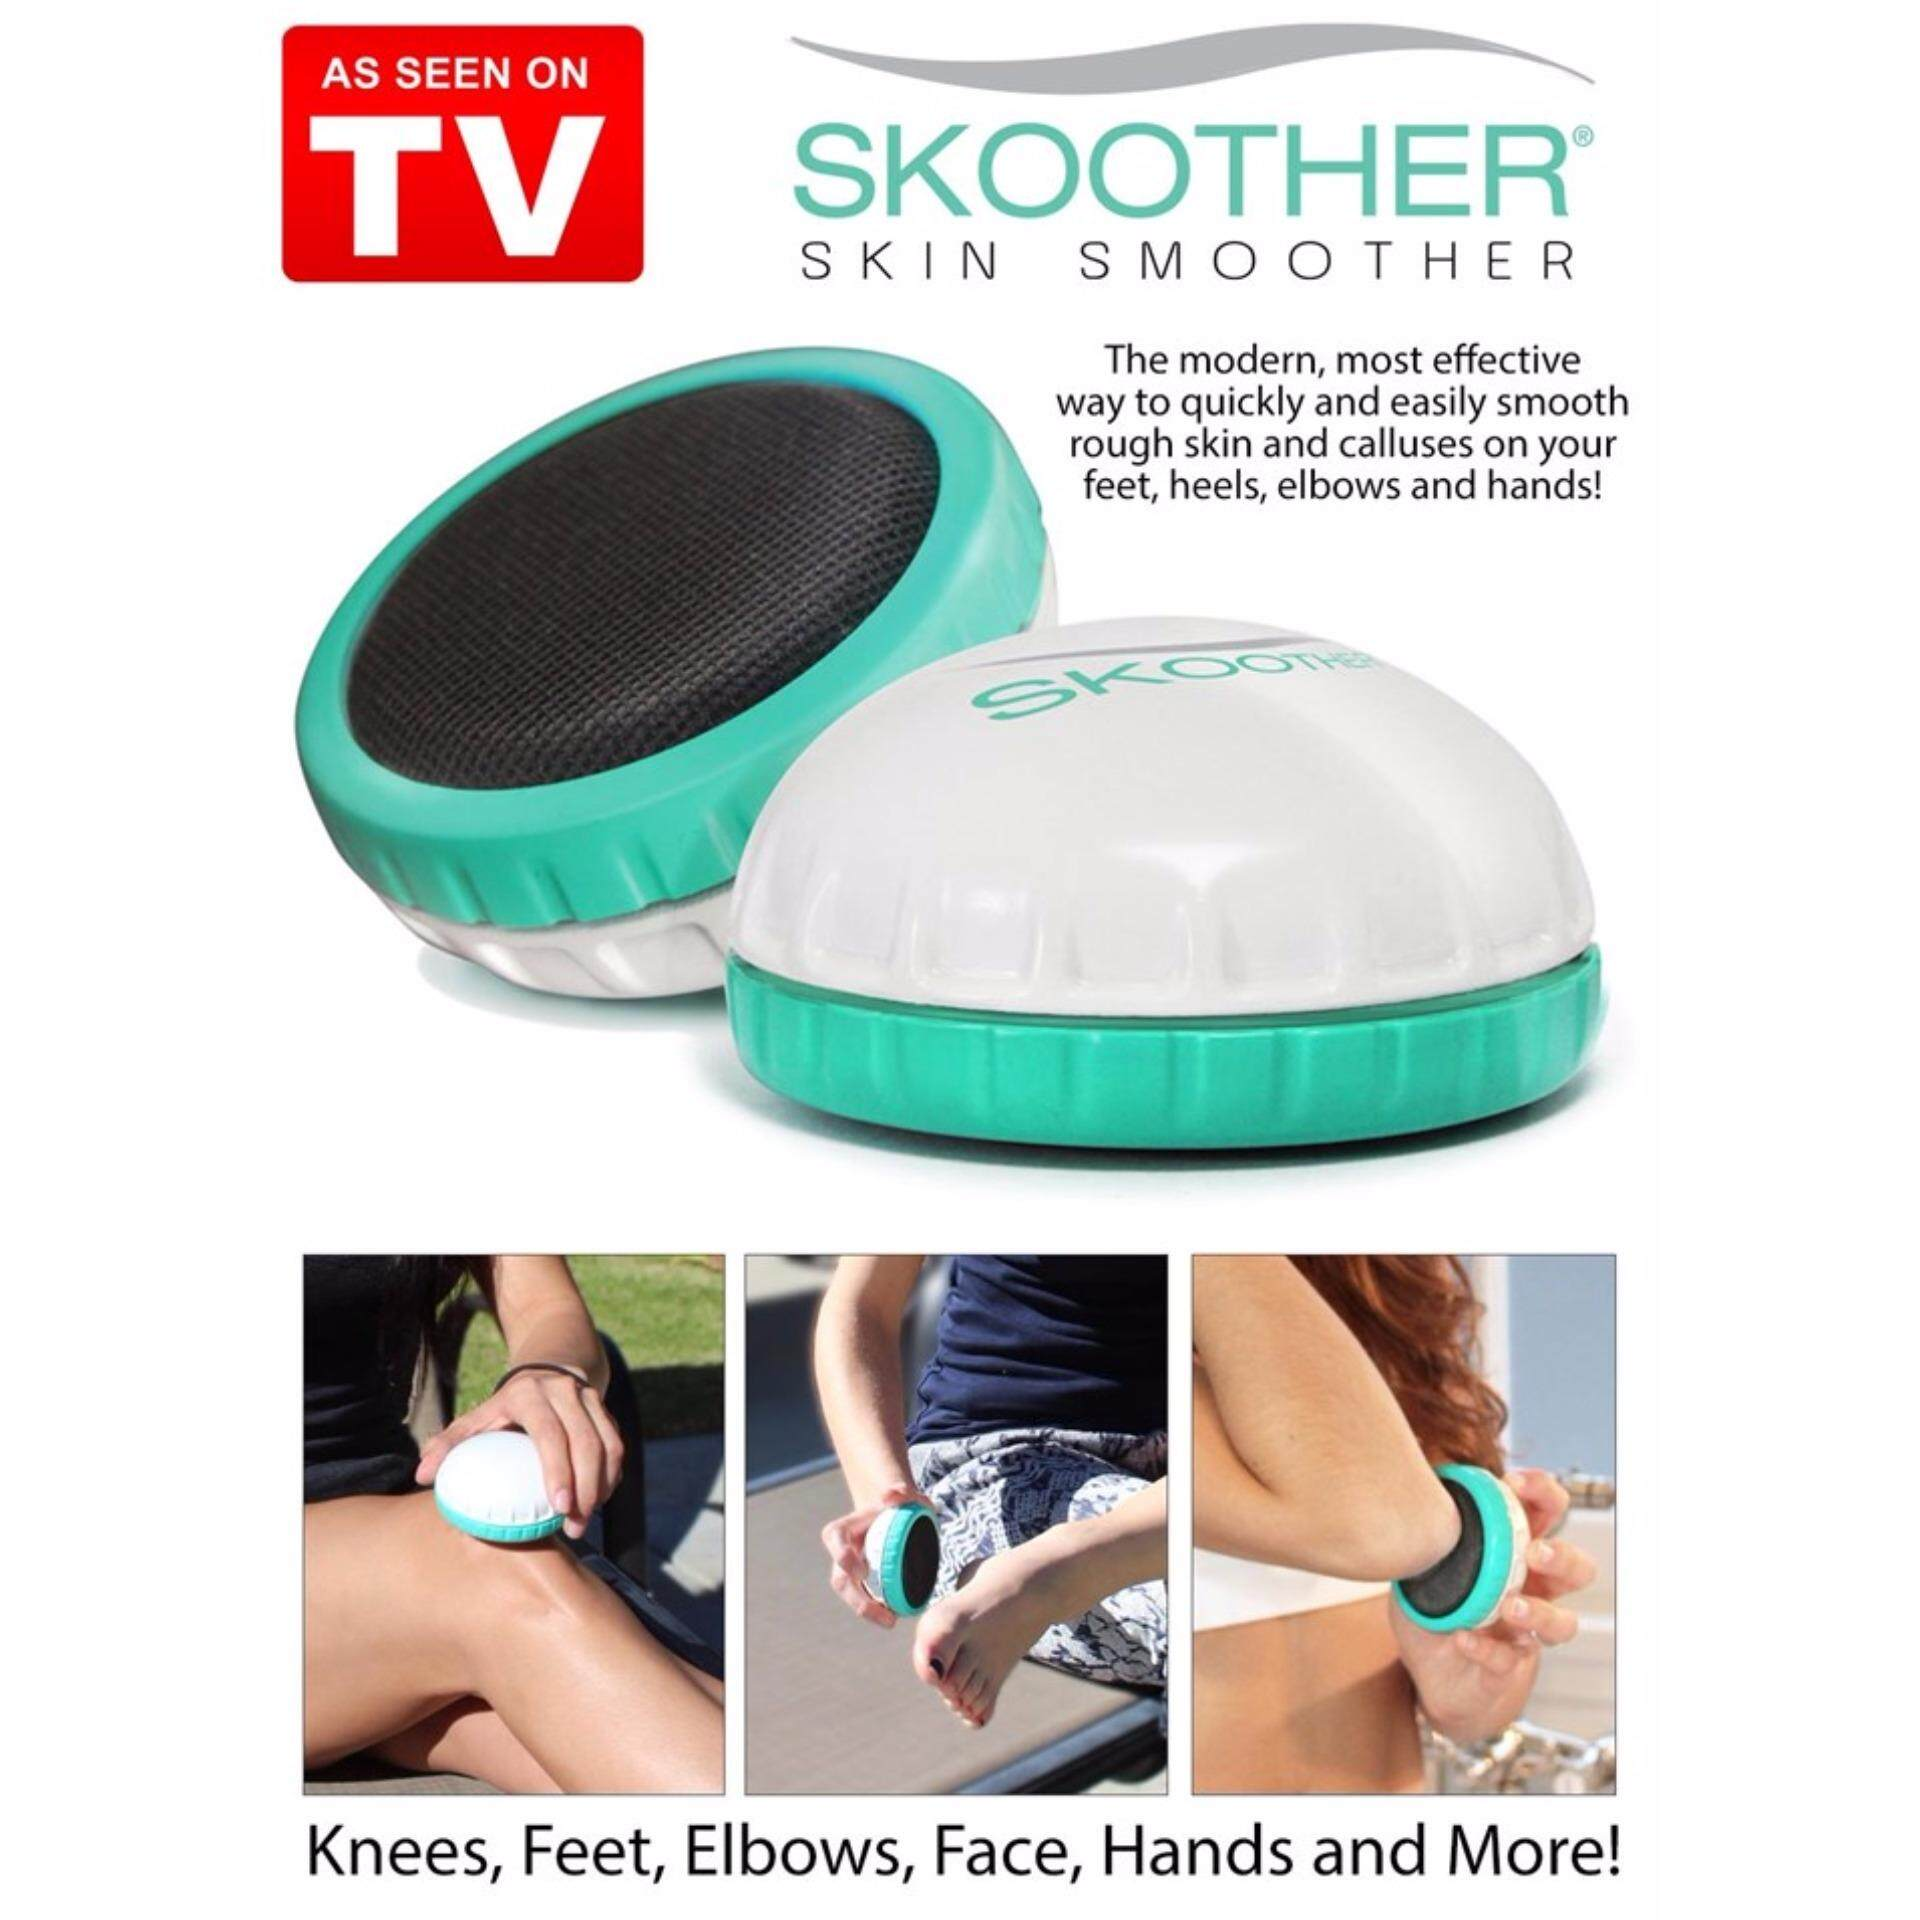 Bliss SKOOTHER Skin Smoother